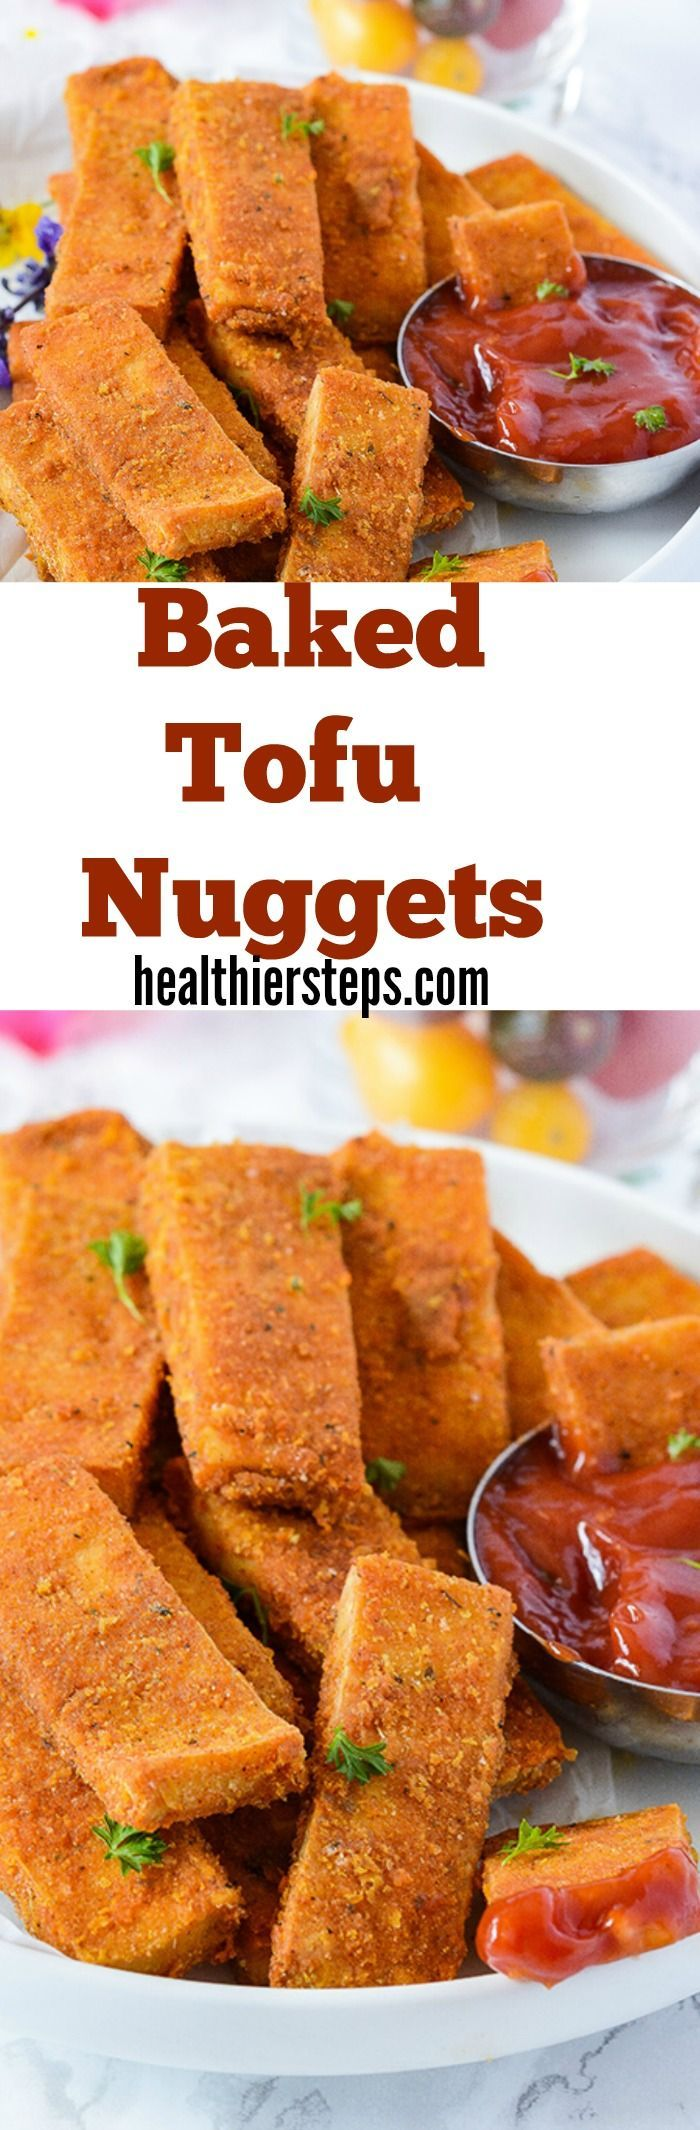 Baked Tofu Nuggets-Full of flavor, crispy on the outside and moist on the inside!